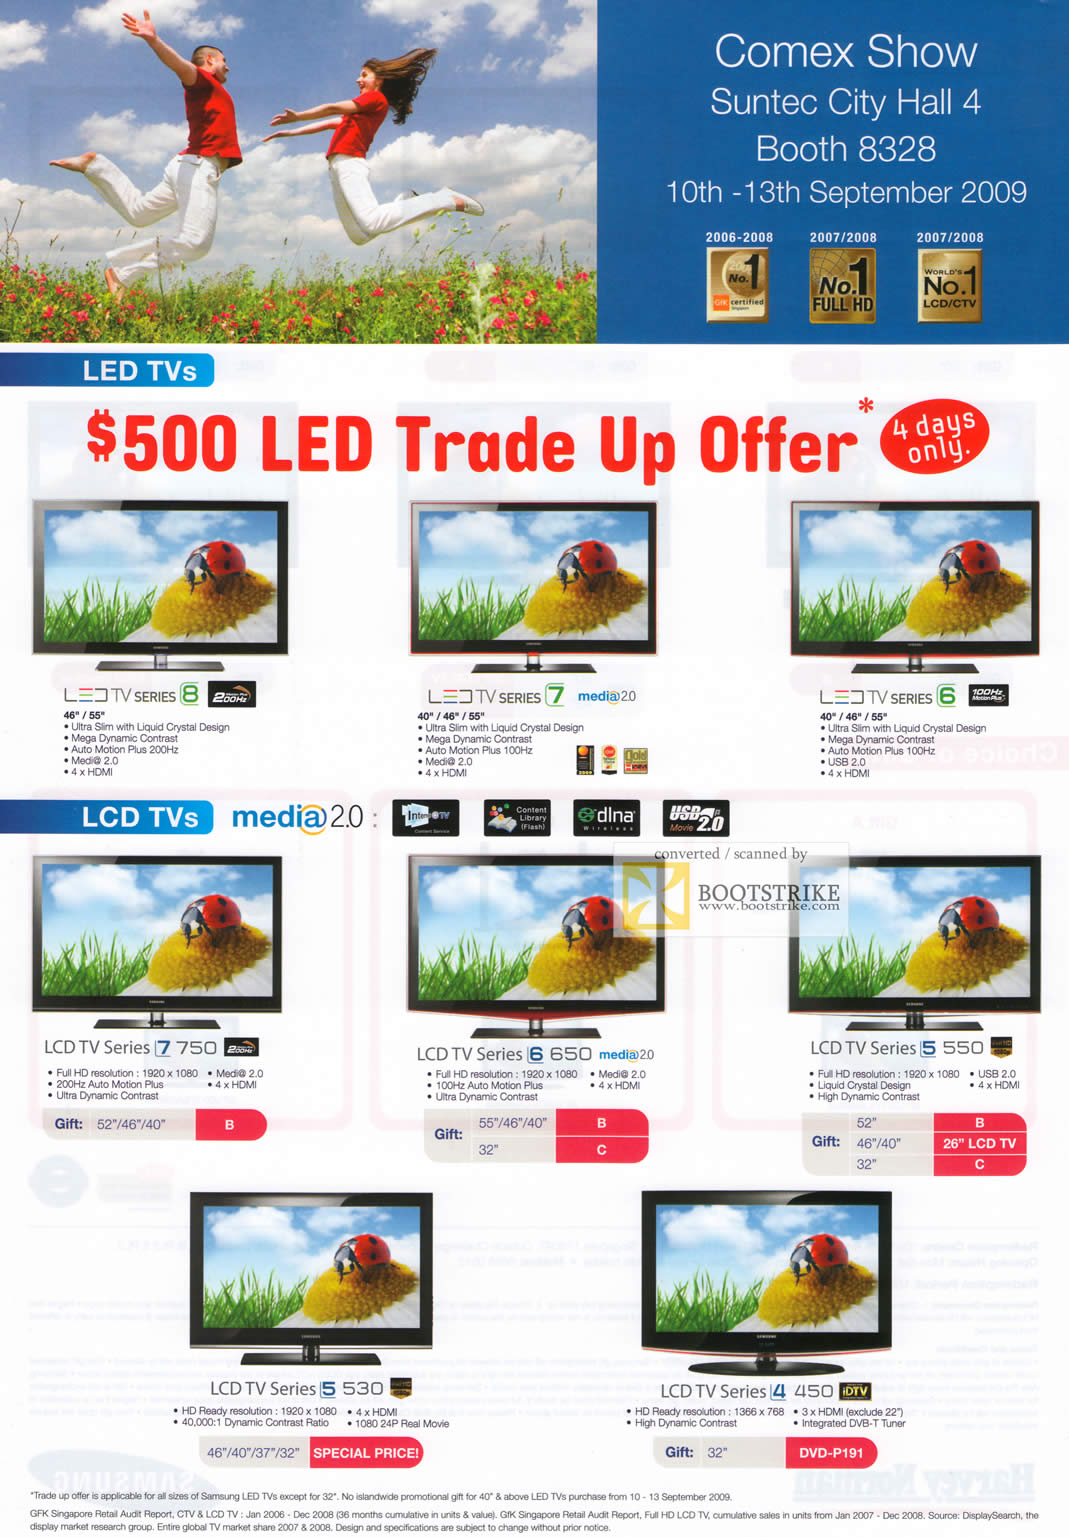 Comex 2009 price list image brochure of Samsung LED TV LCD TV Media 2.0